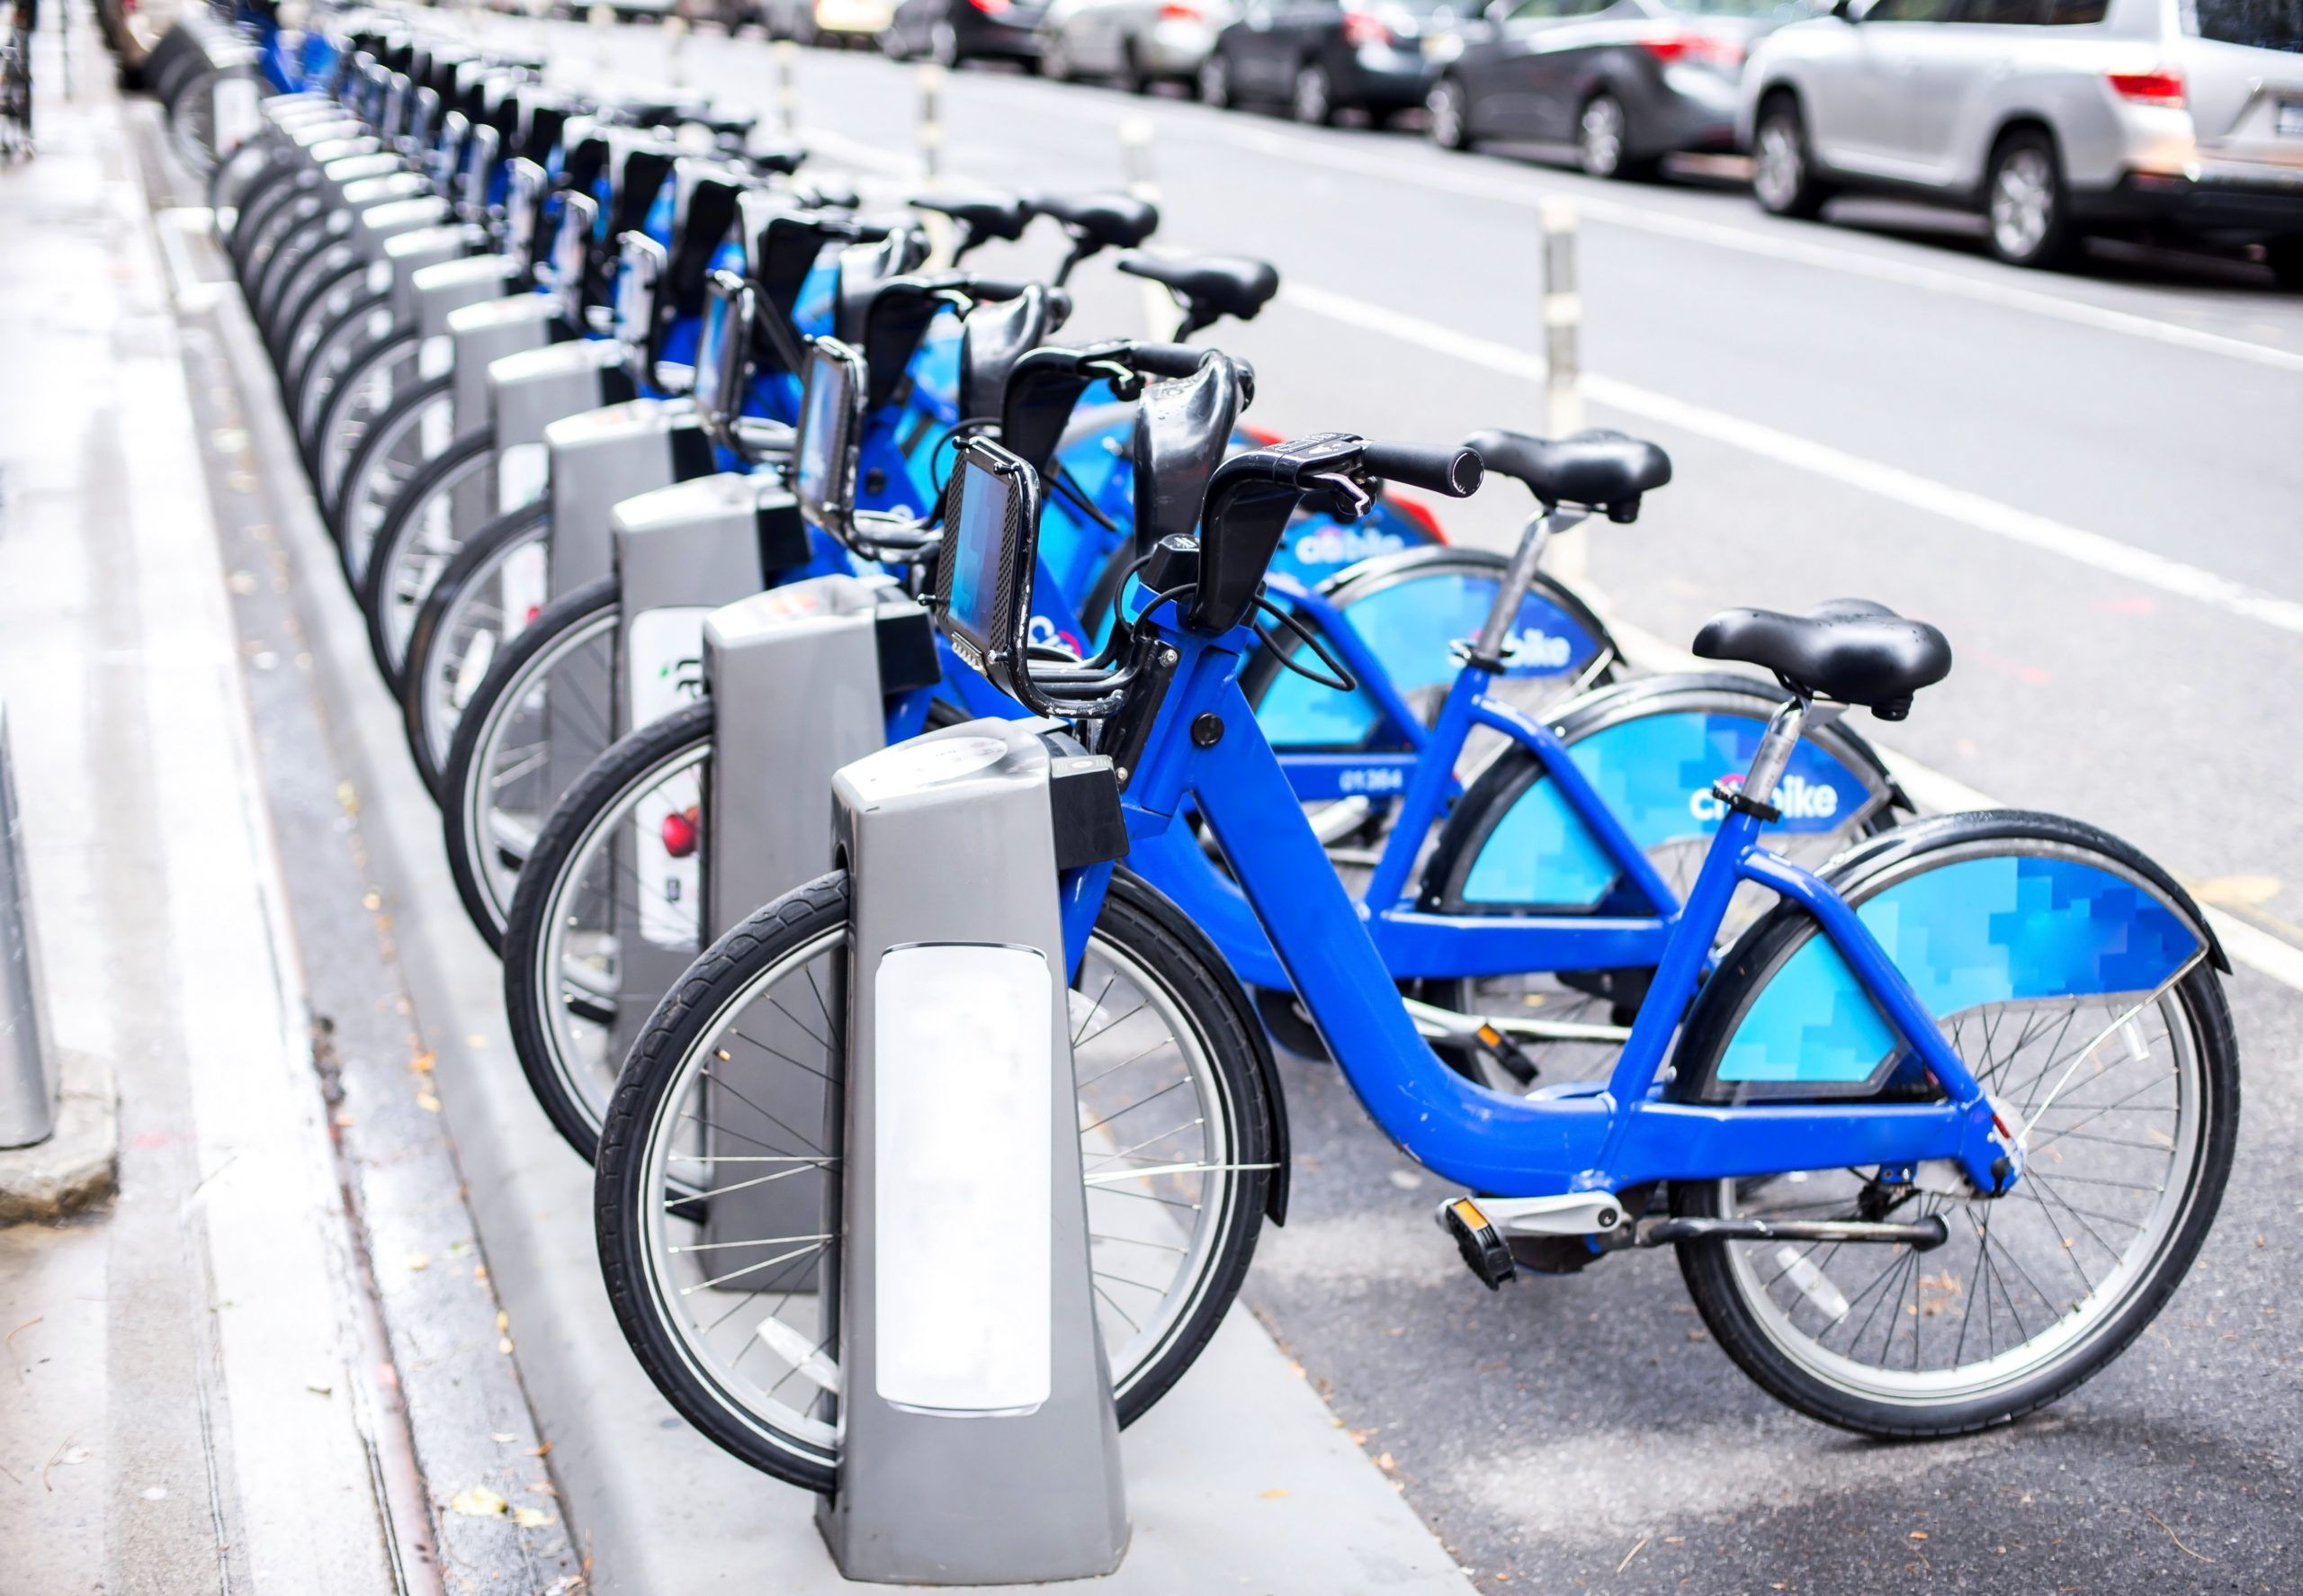 Bike share app bikes lined up in a row